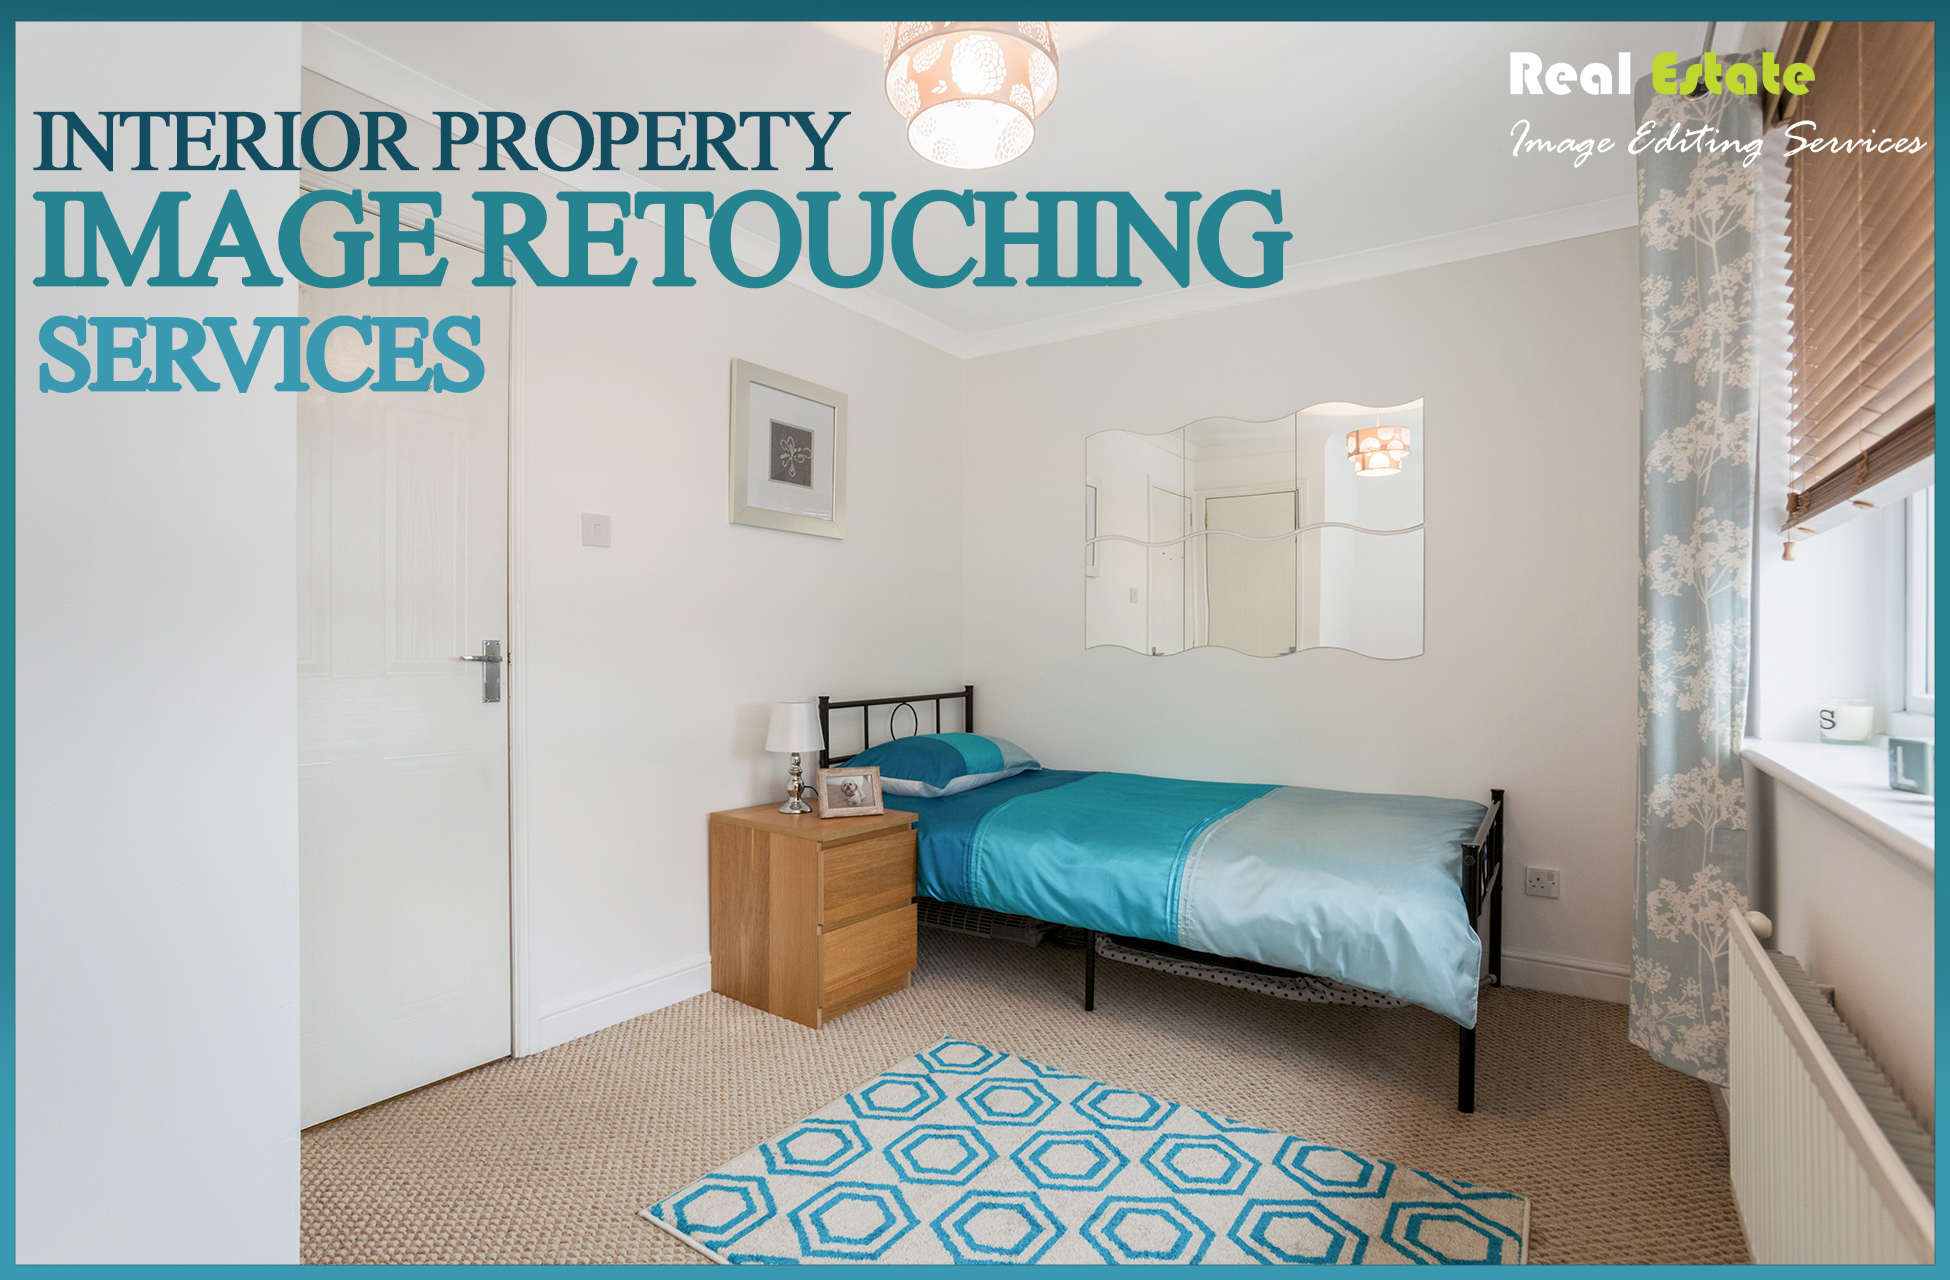 Interior Property Image Retouching Services For Real Estate Photographers